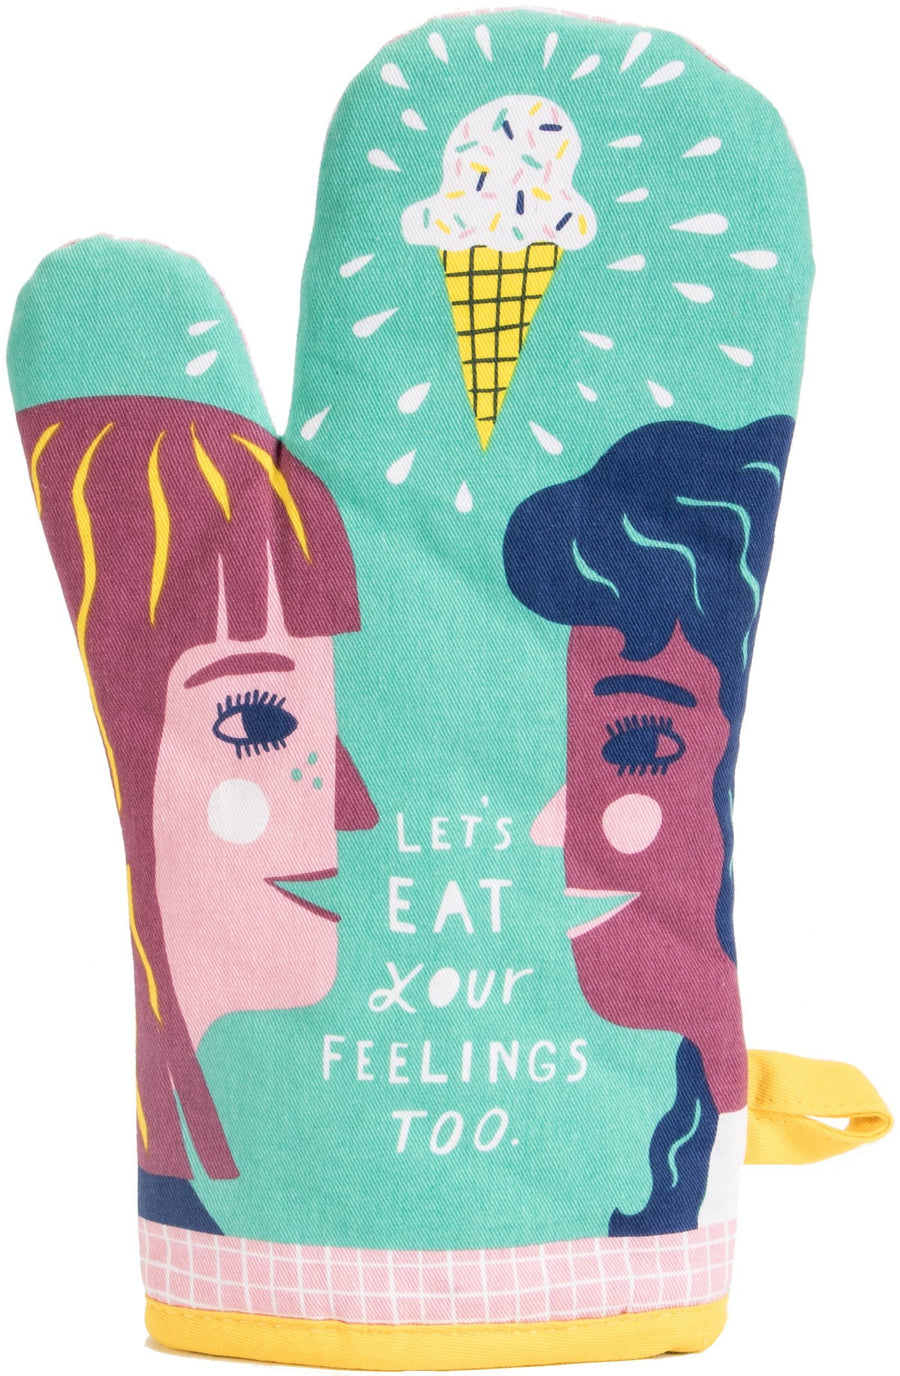 Oven Mitt - Let's Eat Our Feelings